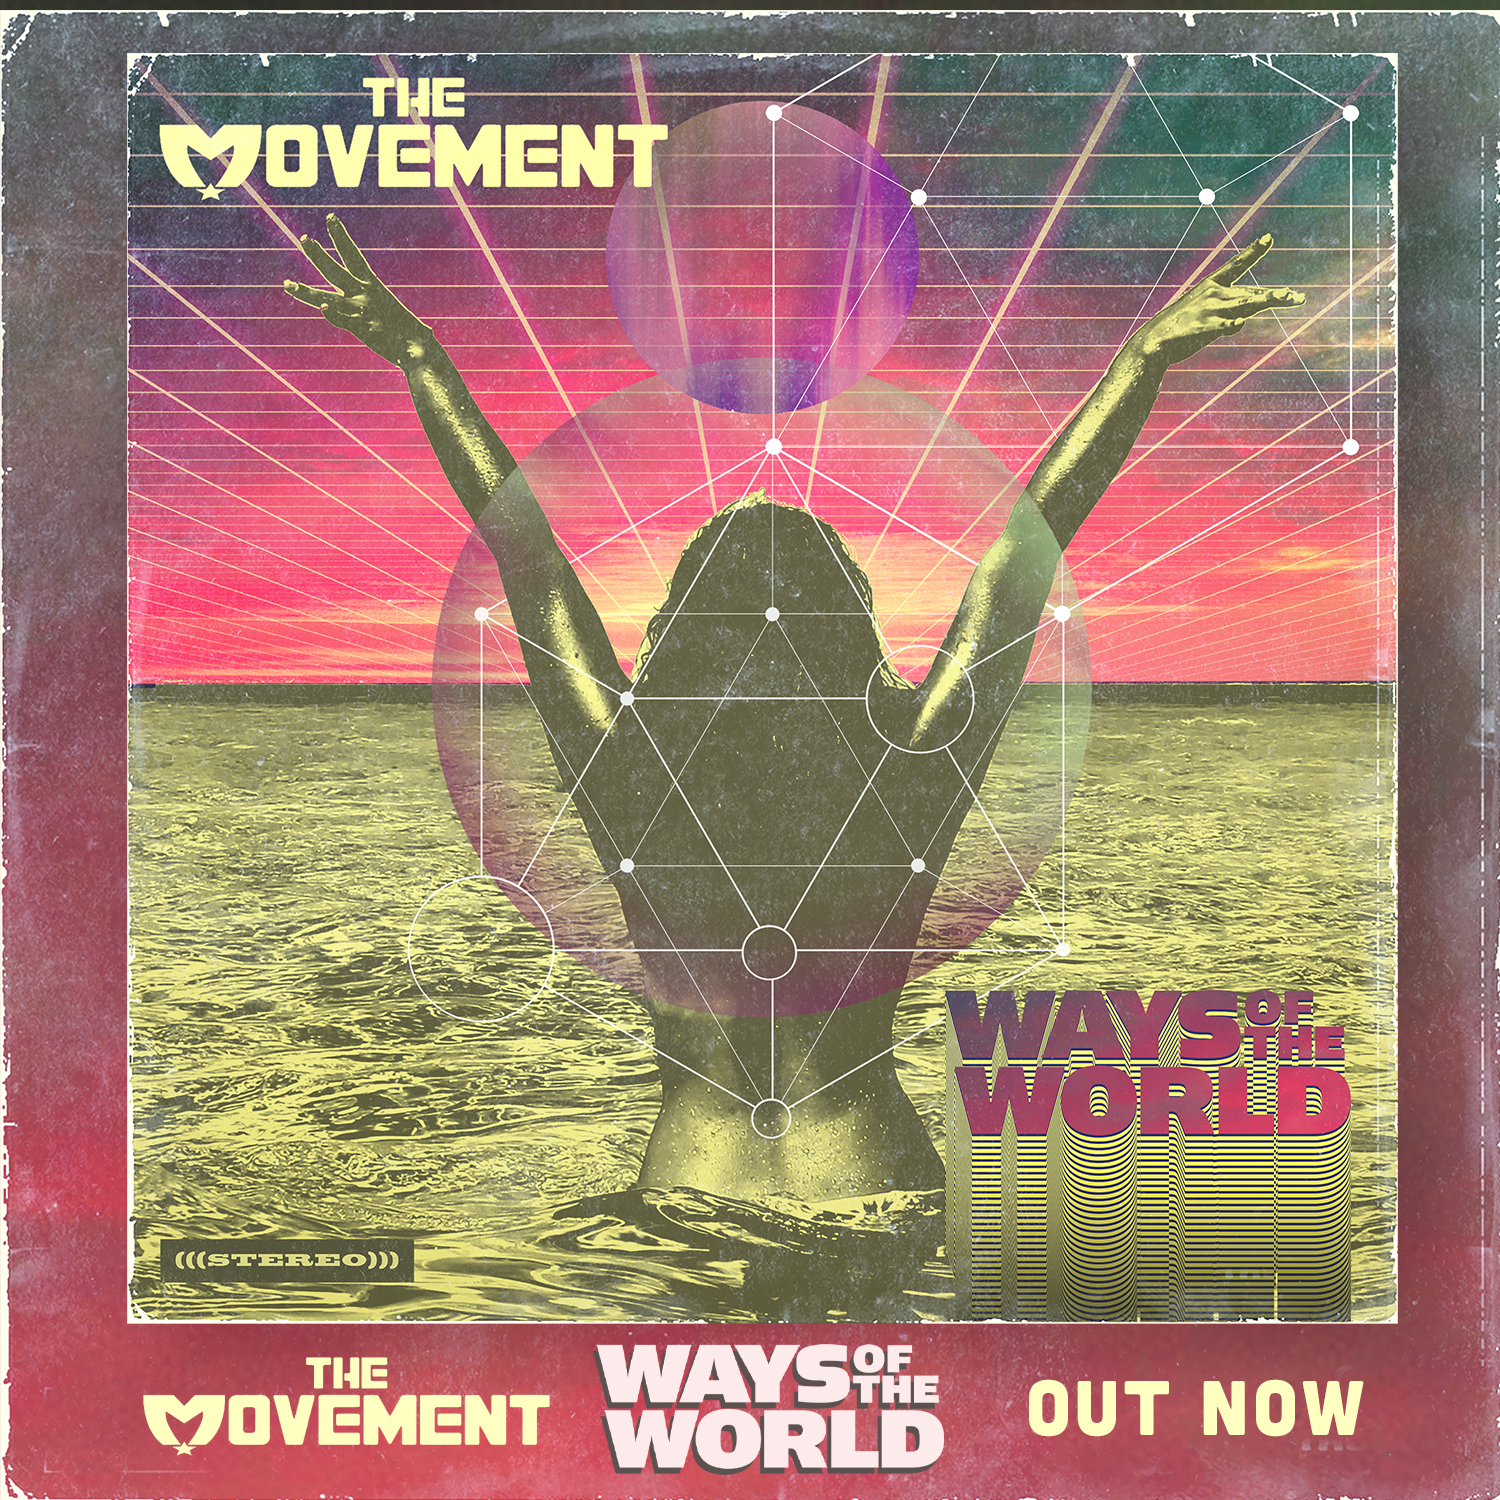 WAYS OF THE WORLD - 📣 WAYS OF THE WORLD is finally here! We are so proud of this record and couldn't be more excited for you to hear it! We poured our hearts and souls into this album, and we hope you find in it a piece of yourselves. Many thanks to everyone who listens, and we look forward to seeing you on the road! 🎶DOWNLOAD / STREAM / SUPPORT